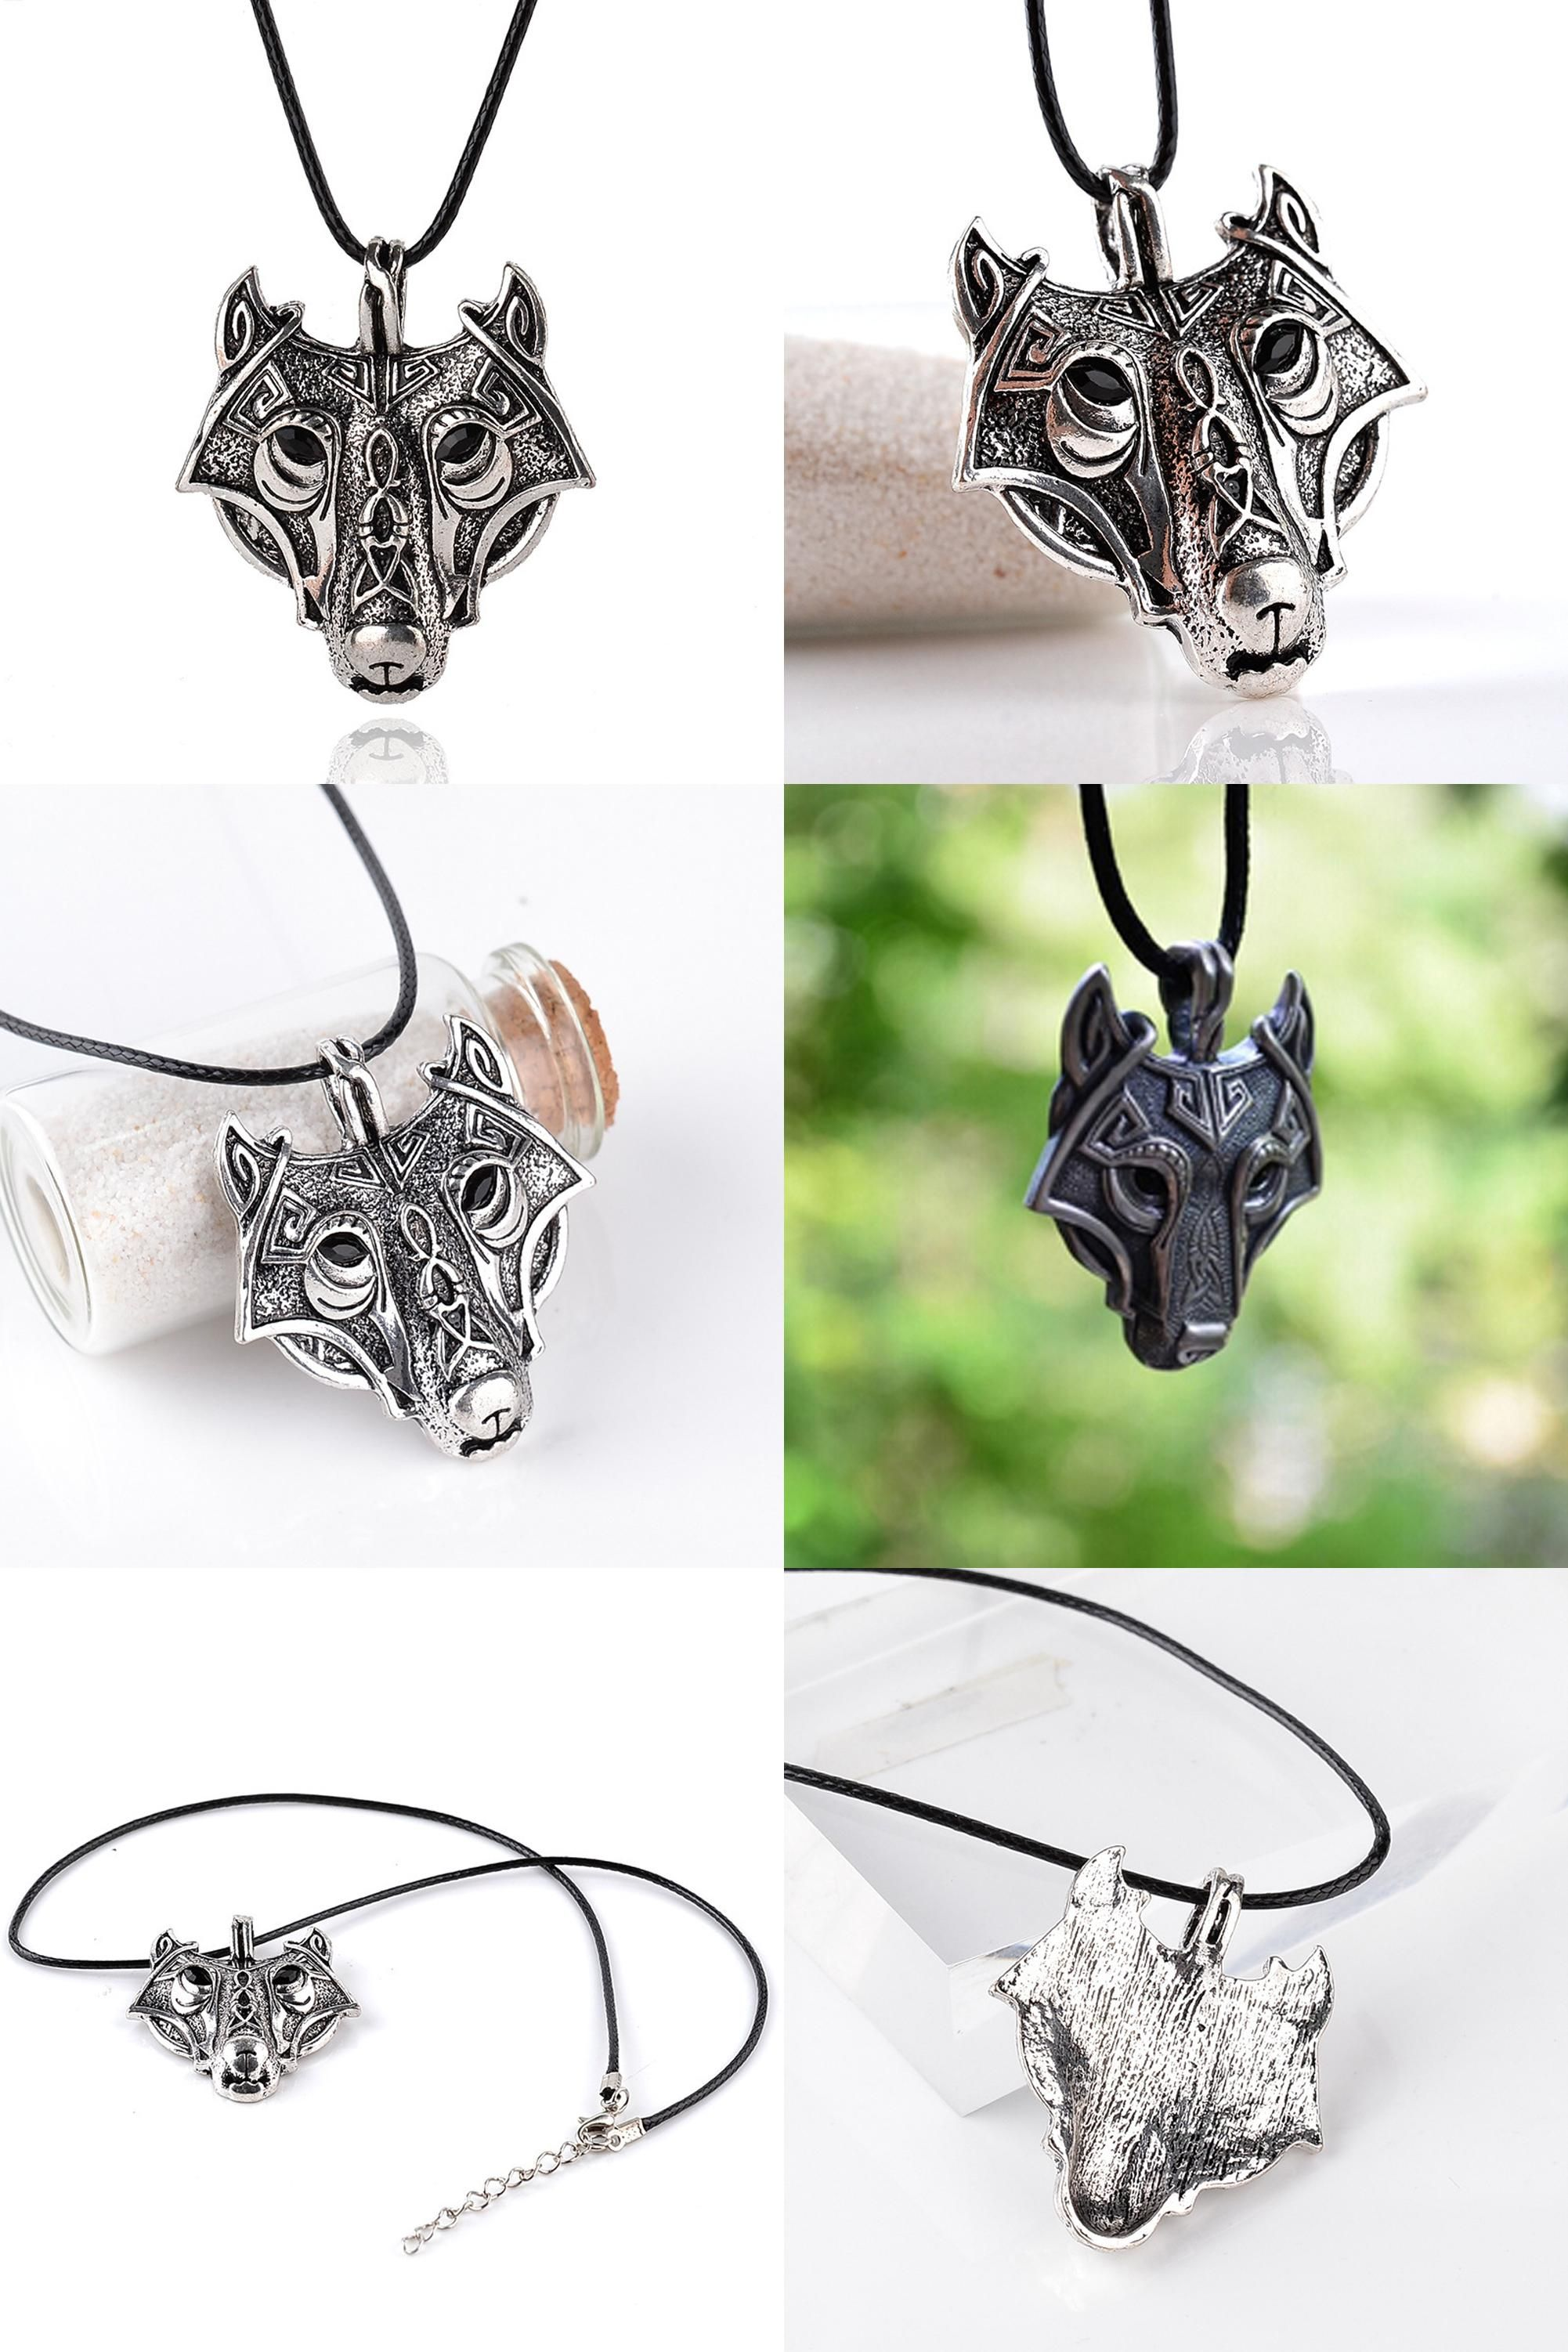 fashion pendant jewelry dropshipping huidang head pin men celt supernatural viking necklace hot sell wolf